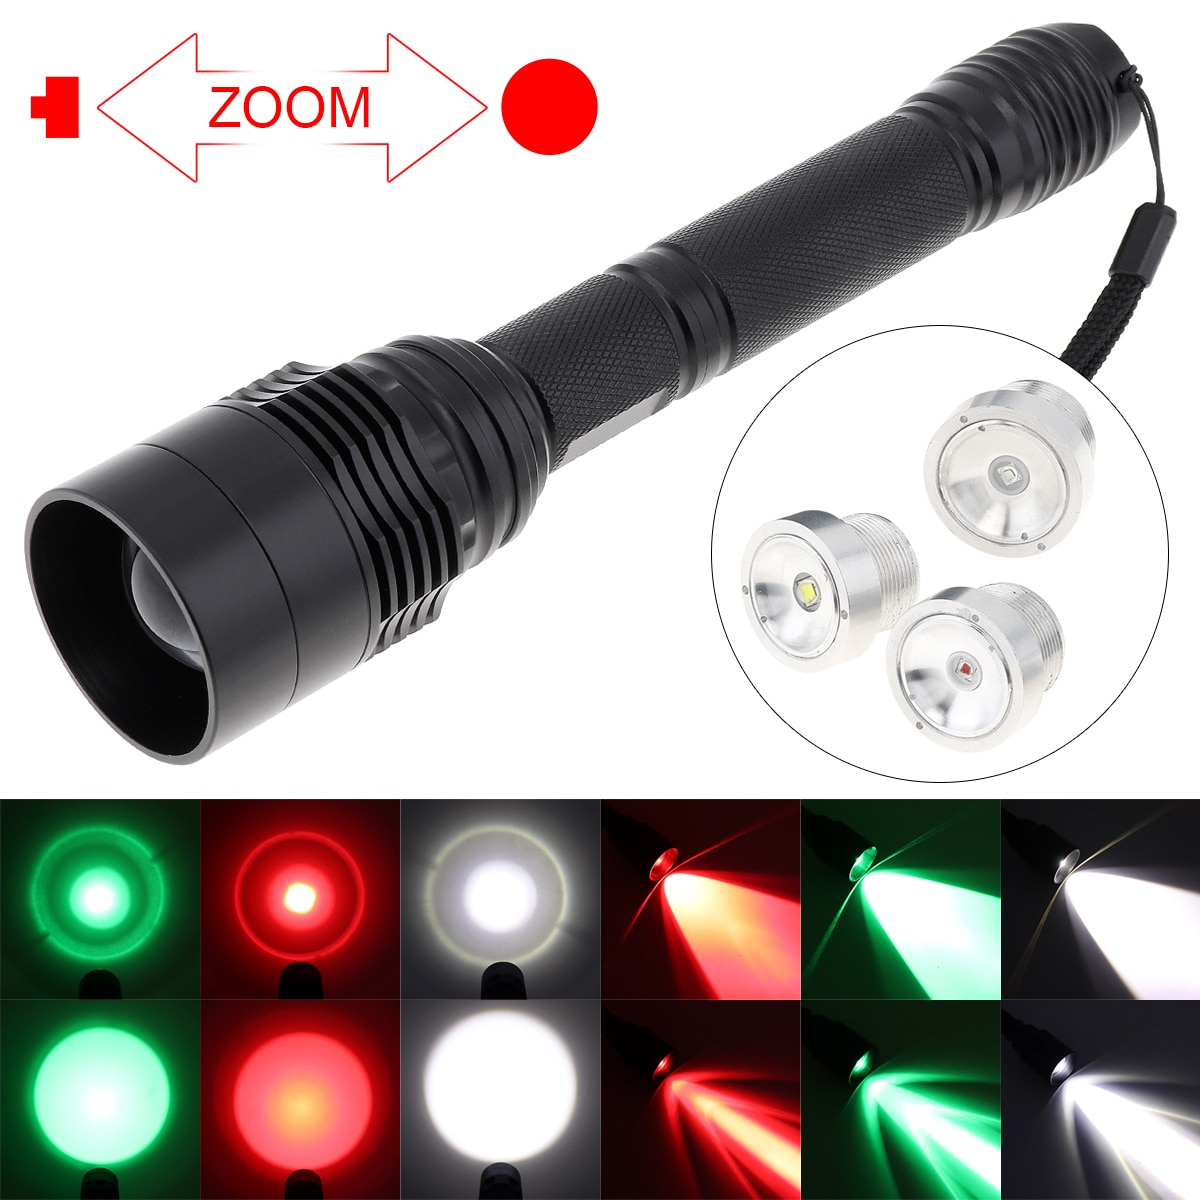 tactical torch q5 r5 led 600lm light 802 flashlight white red green blue light for outdoor camping hunting SecurityIng Portable Flashlight LED Torch White/Red/Green Light Color C11 48MM Lens 300-1300 LM  for Hunting / Outdoor Camping